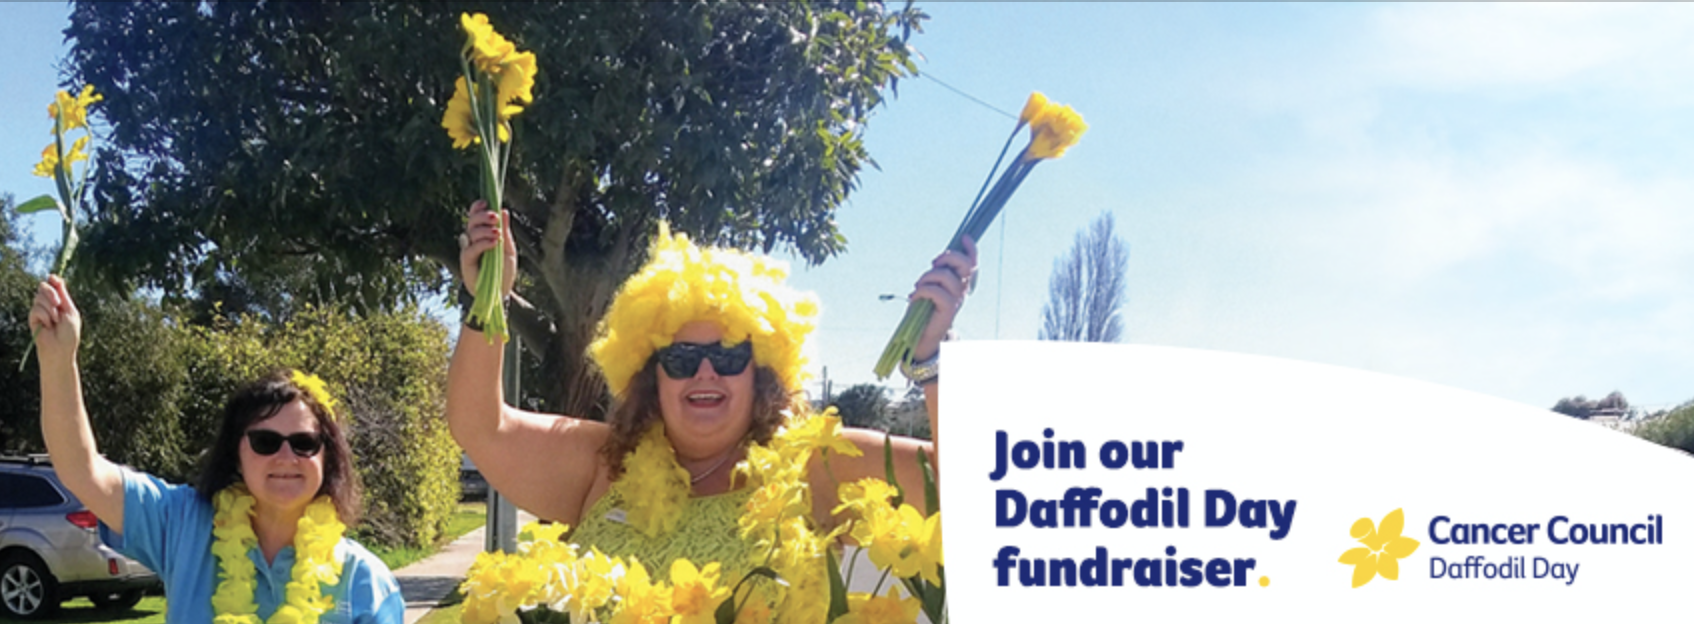 Join our fundraiser Facebook Cover - Large